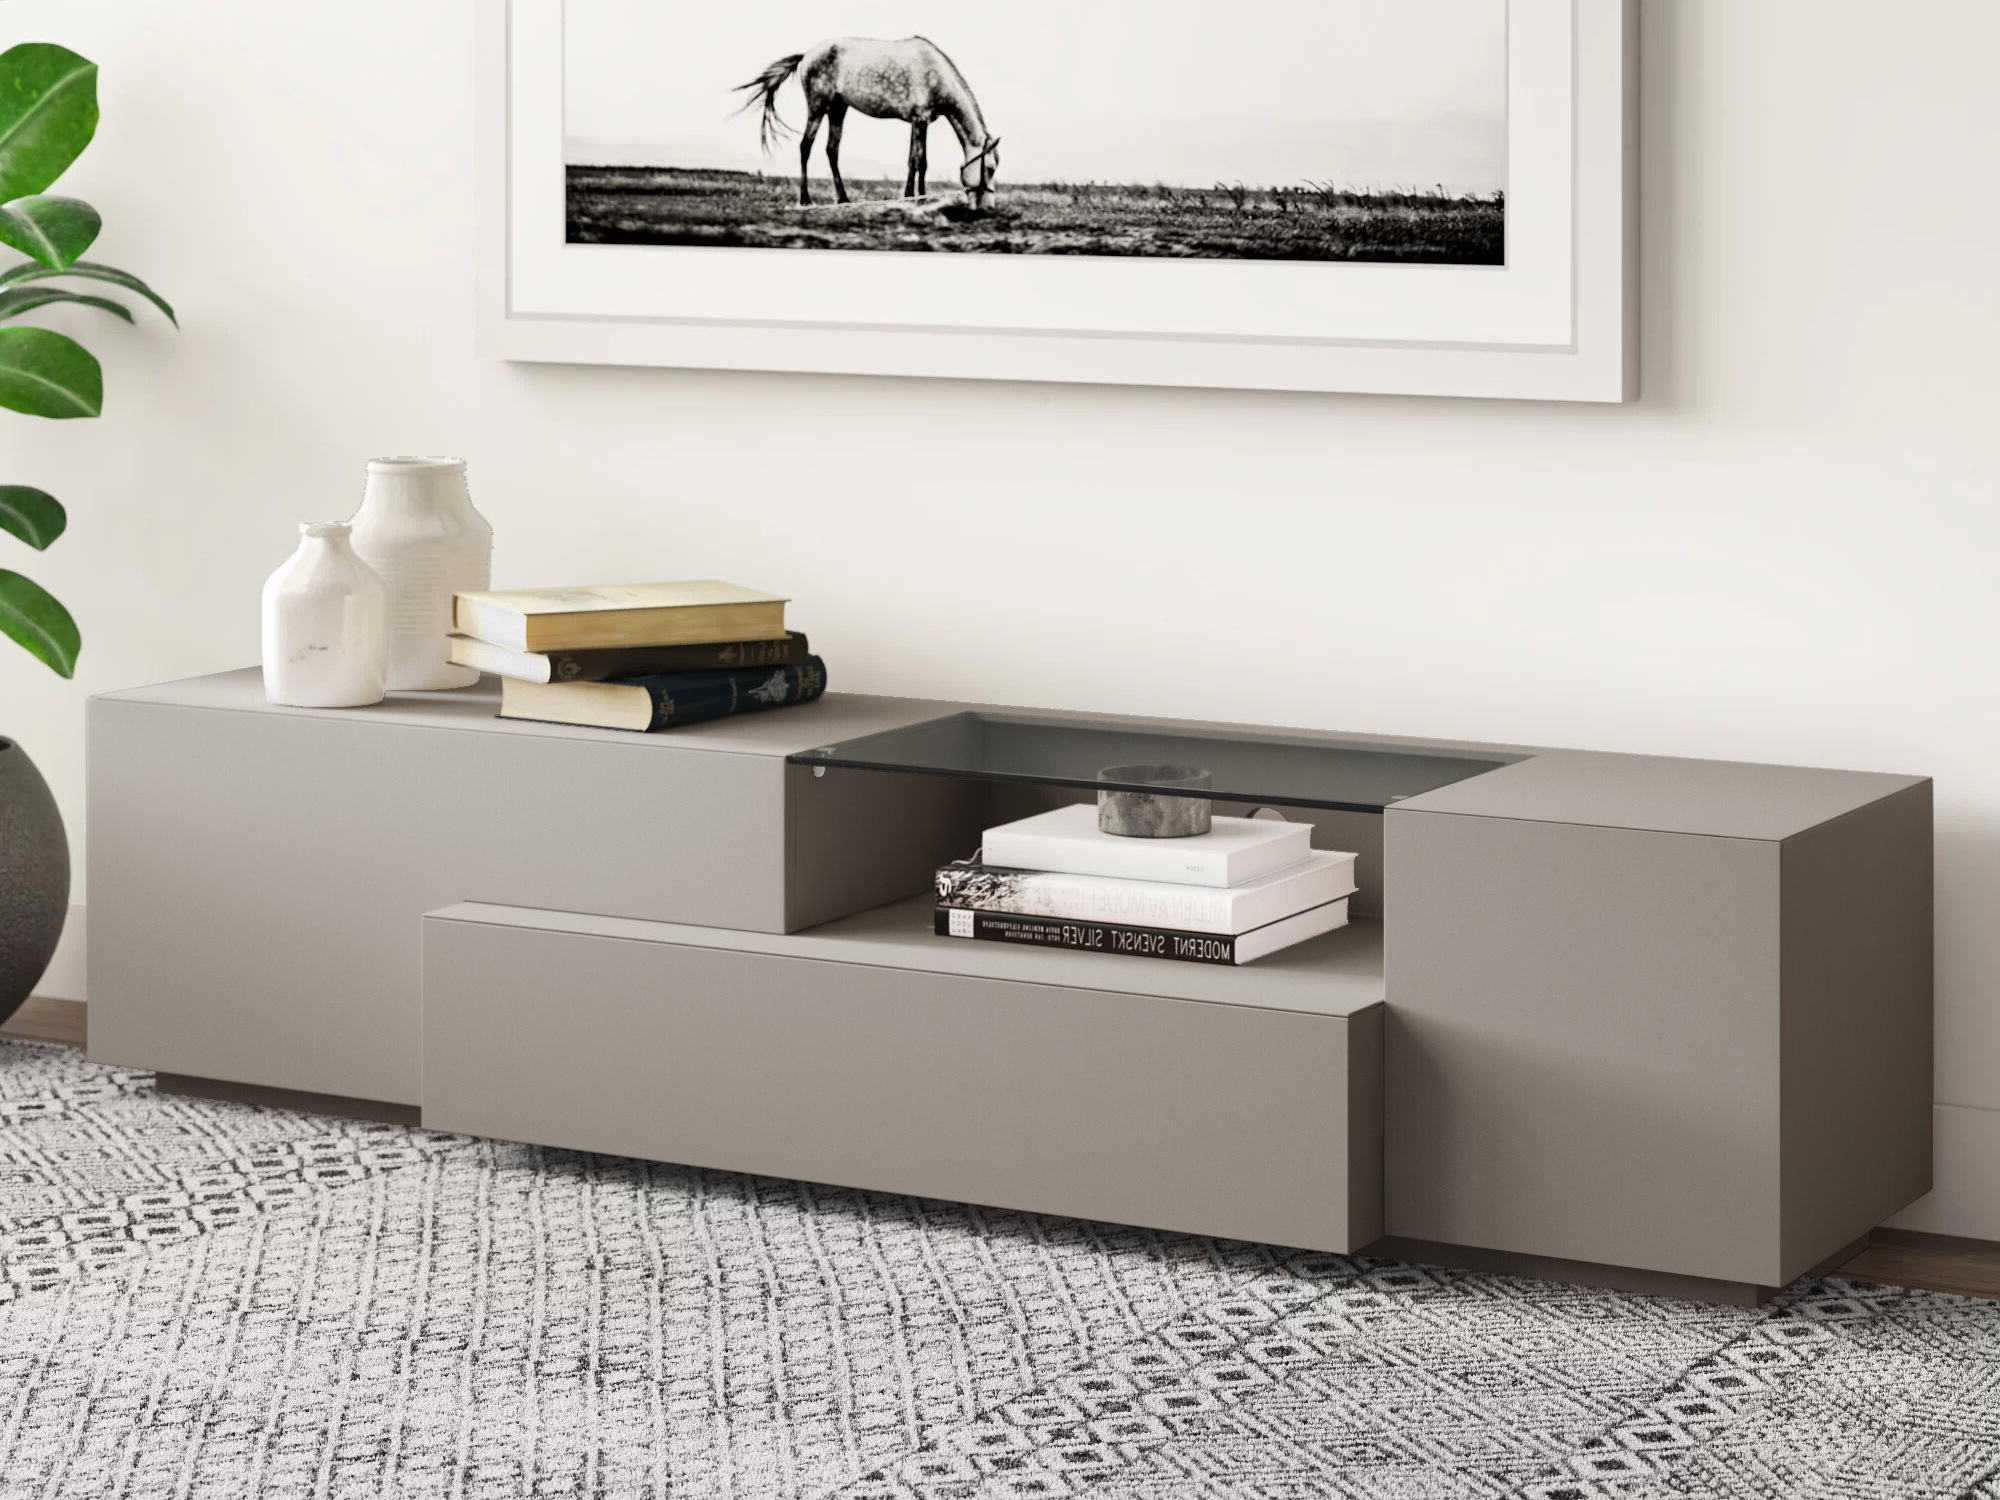 Grey Finish Contemporary Functional Entertainment Tv Stand Regarding Rustic Grey Tv Stand Media Console Stands For Living Room Bedroom (View 18 of 20)